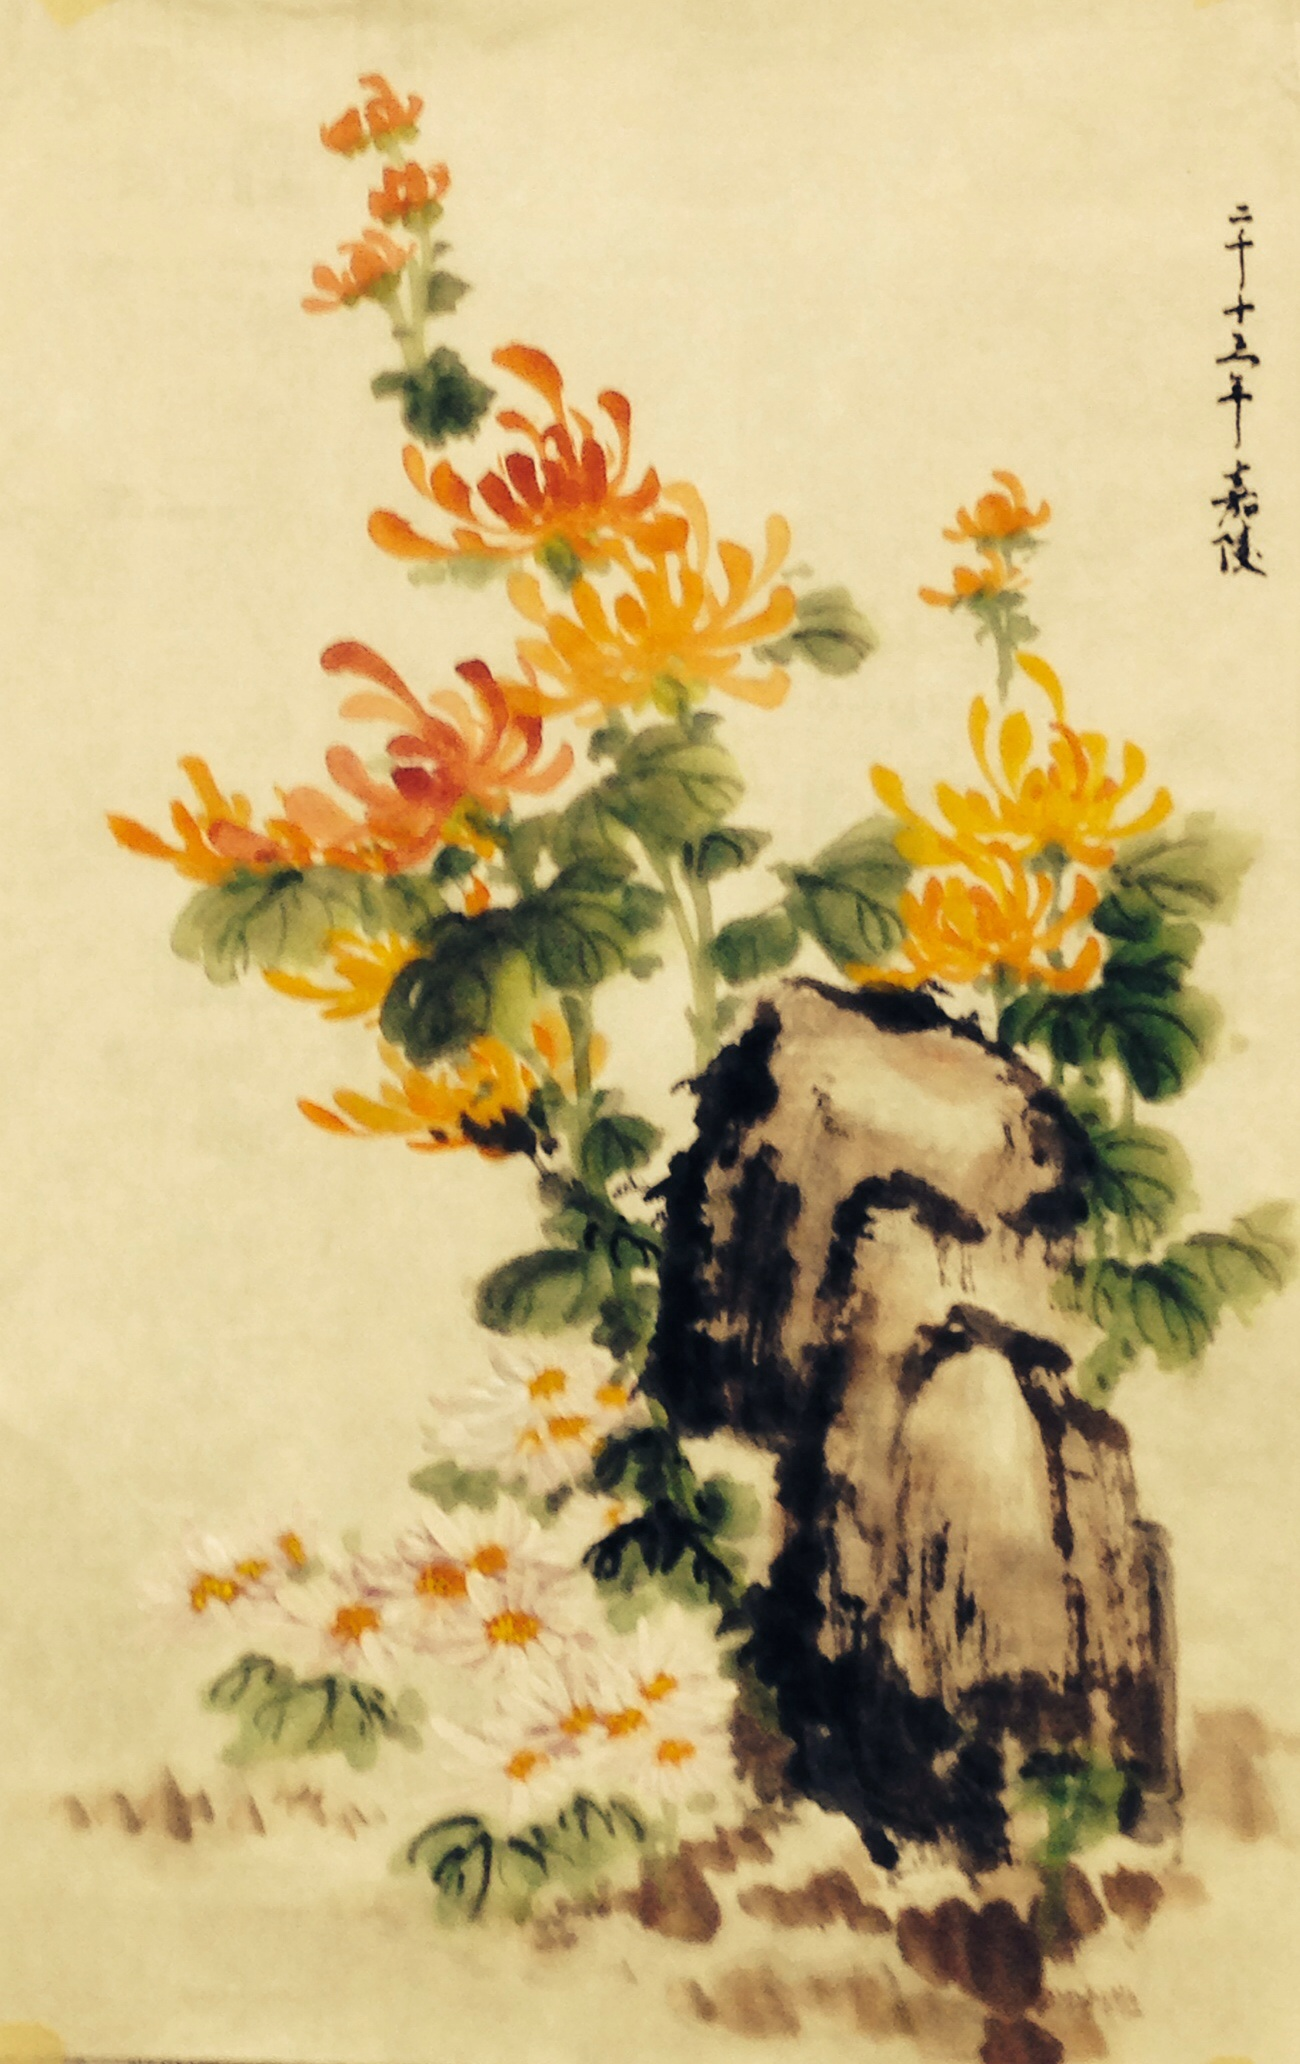 Demo Painting 2013 - 谭嘉陵 Chinese Traditional Brush Painting